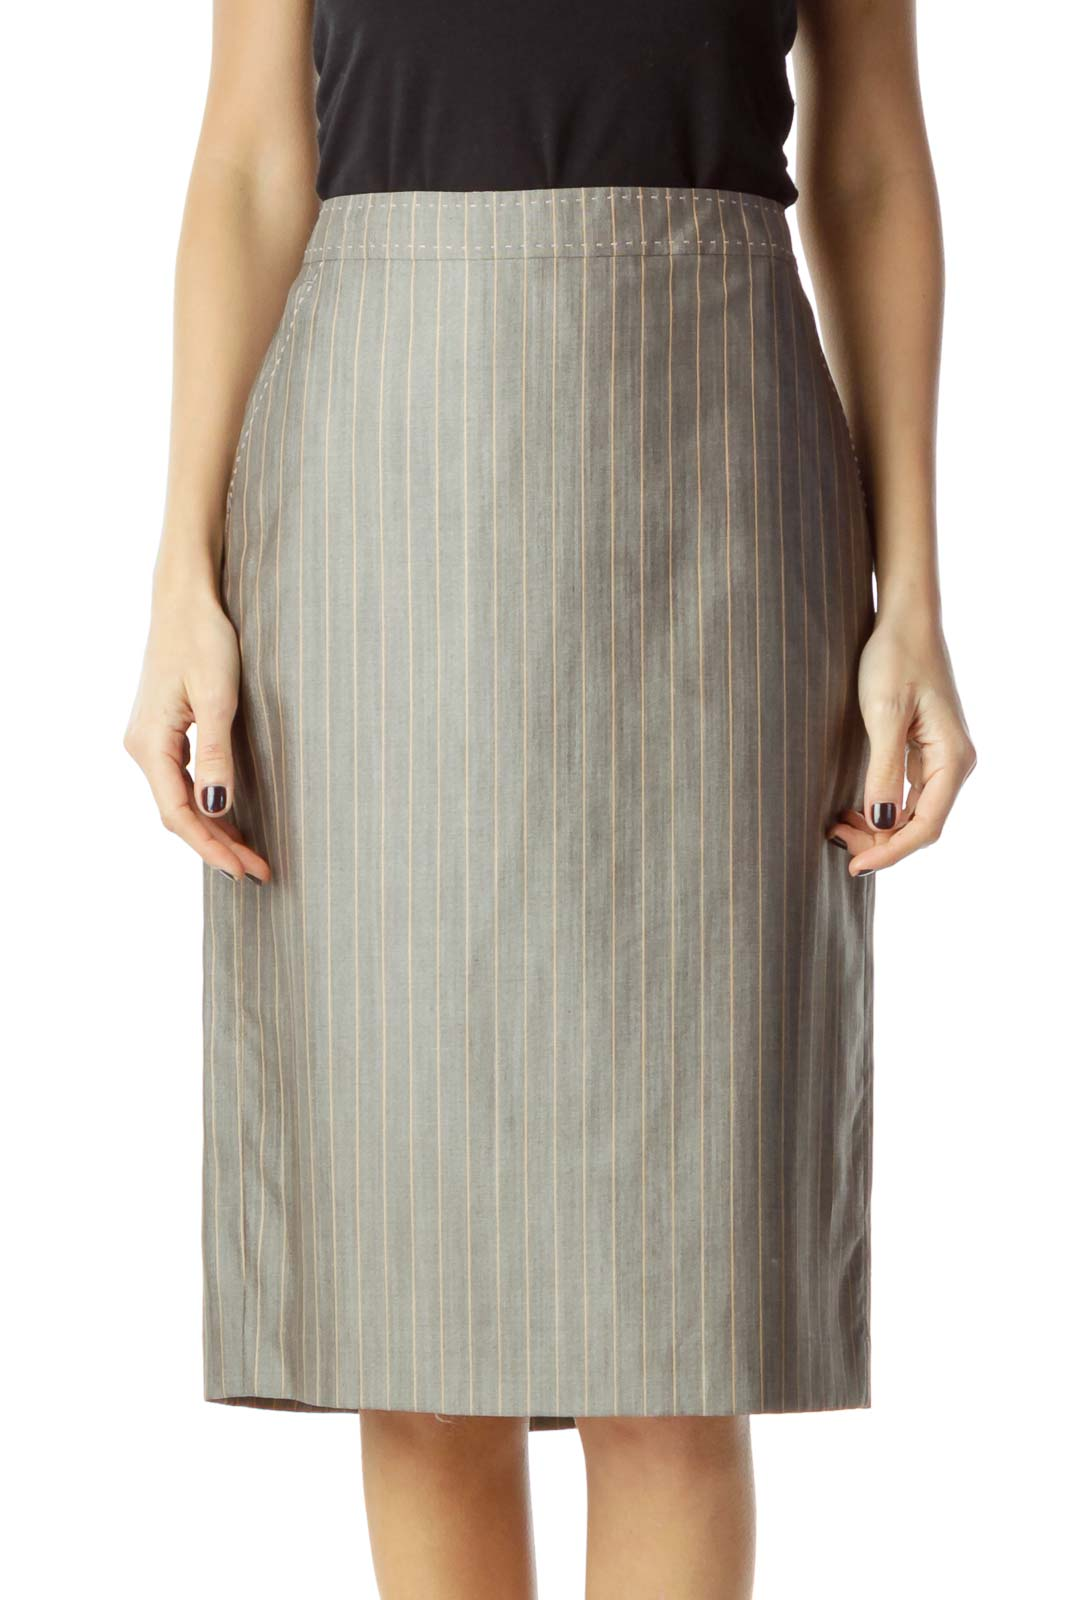 f55a331e9 Shop Gray Striped Wool Silk Pencil Skirt clothing and handbags at ...